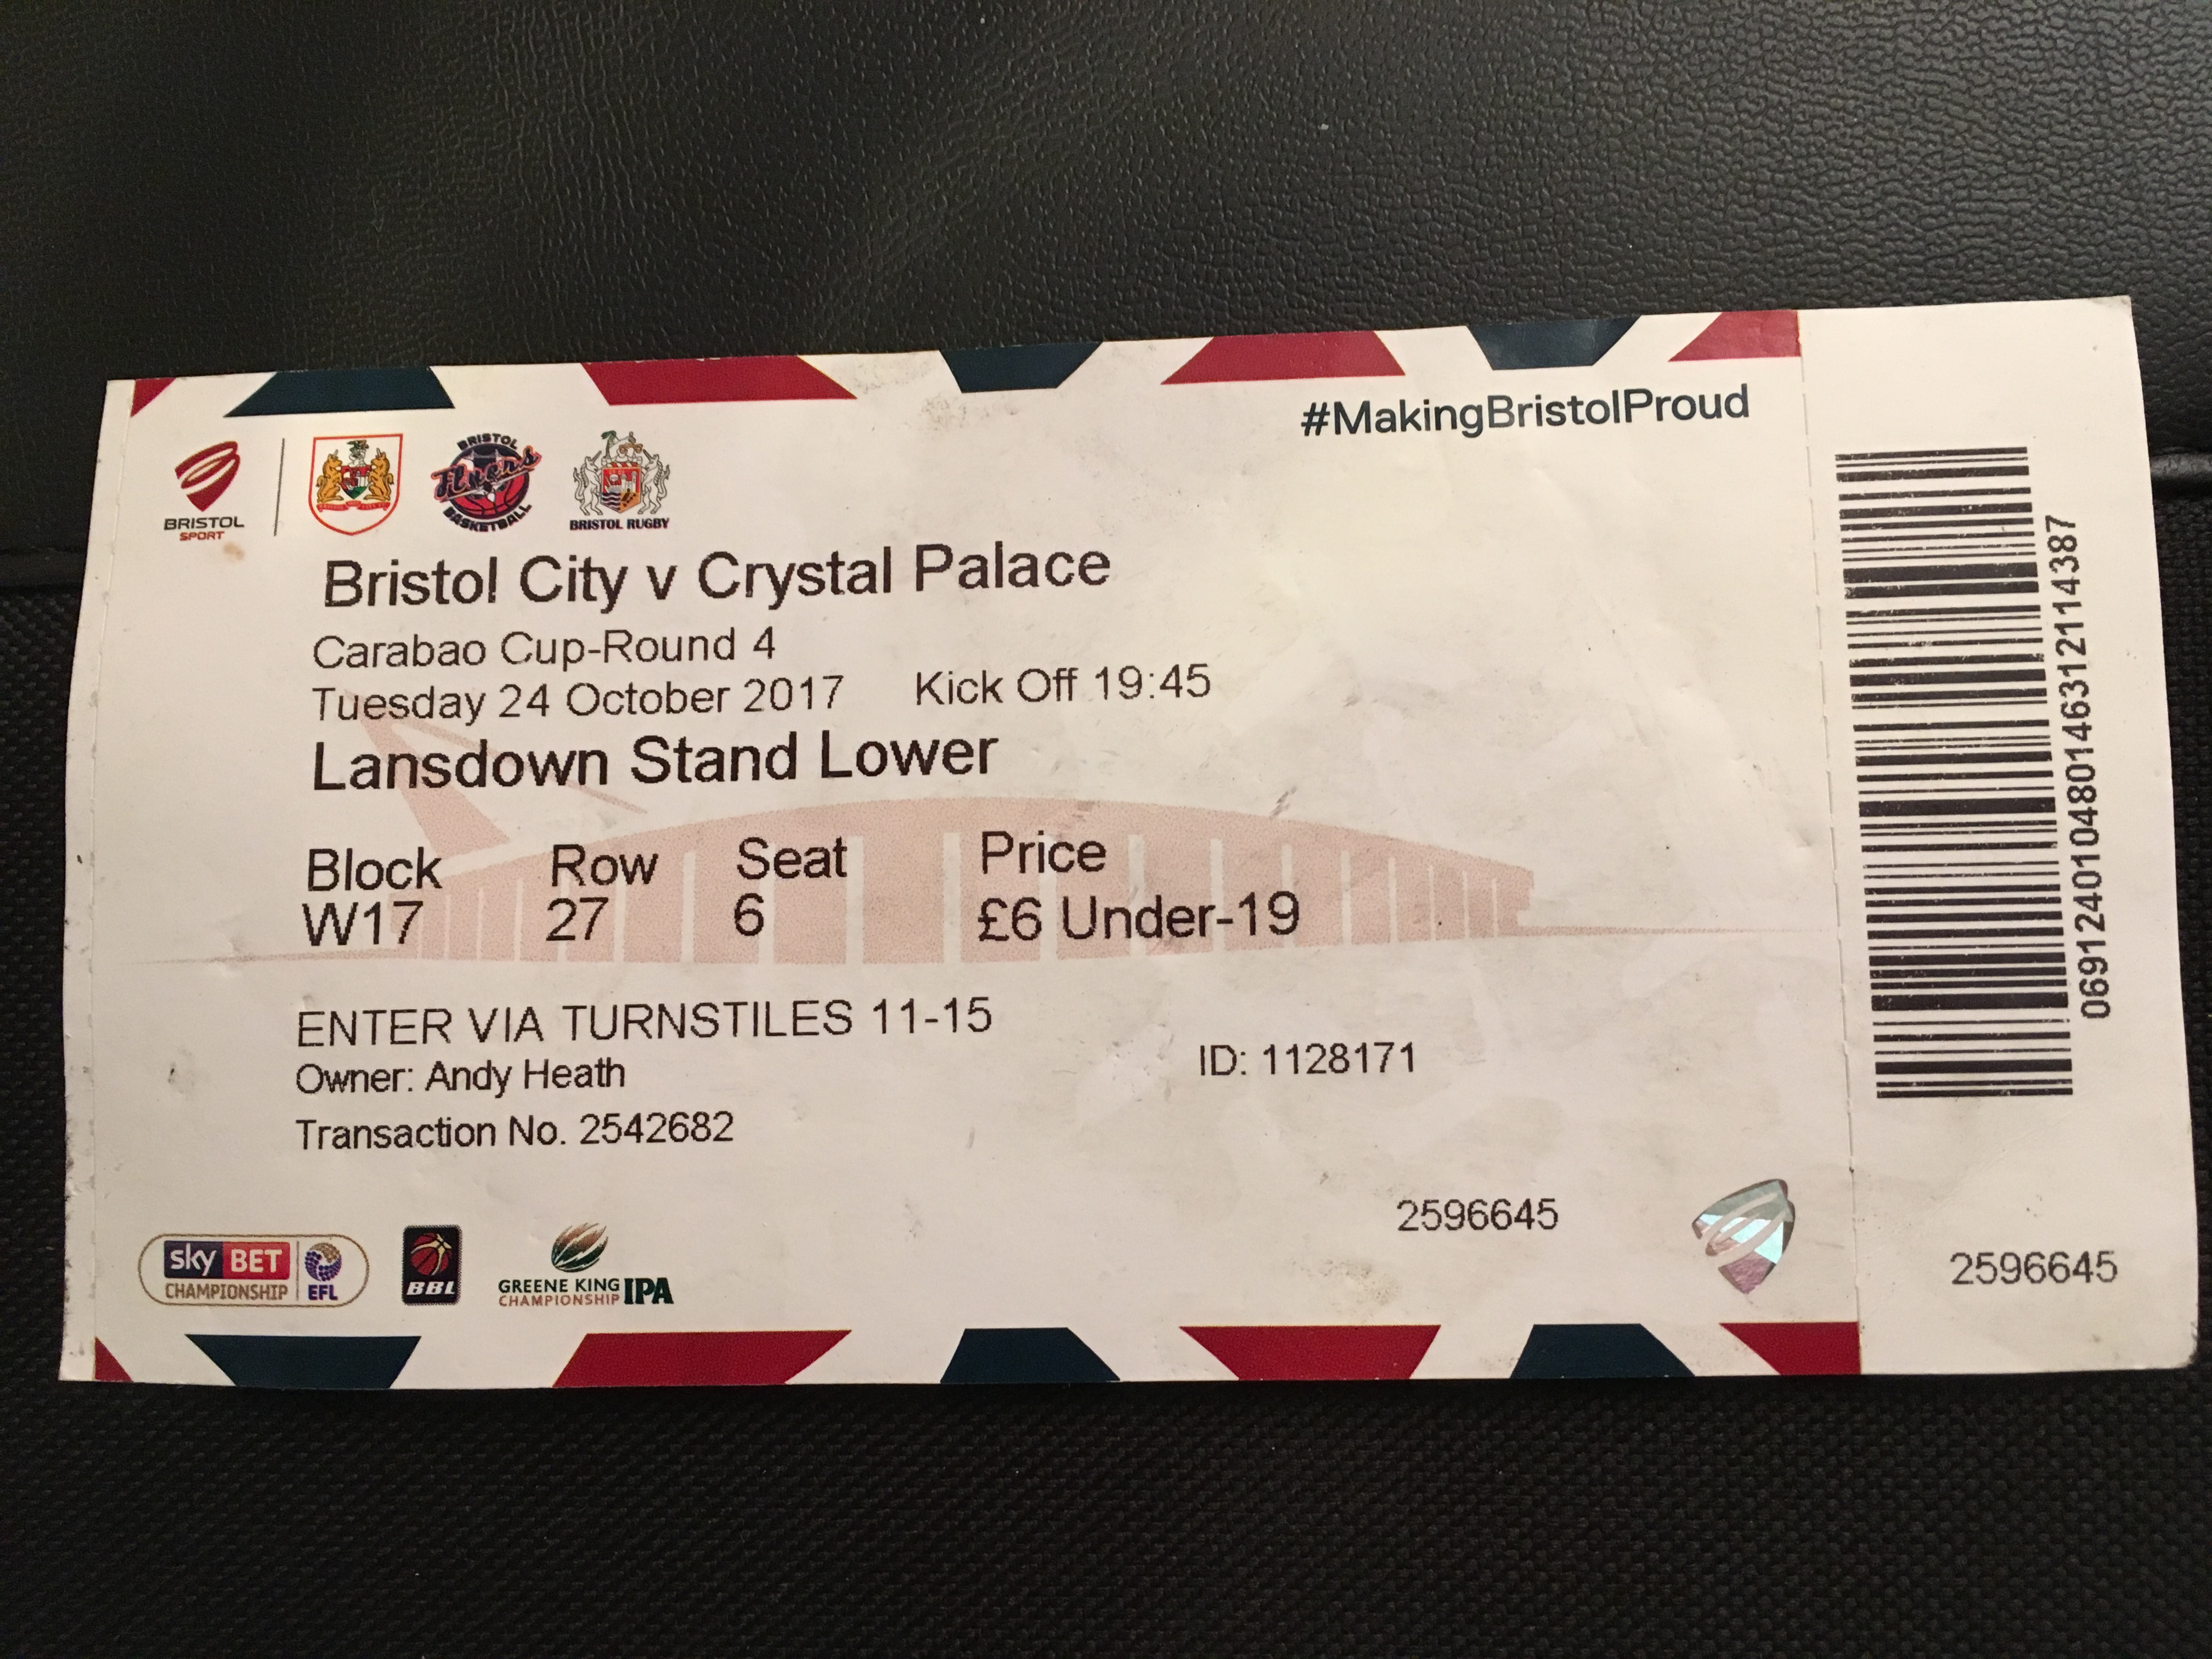 Bristol City v Crystal Palace 24-10-17 Ticket